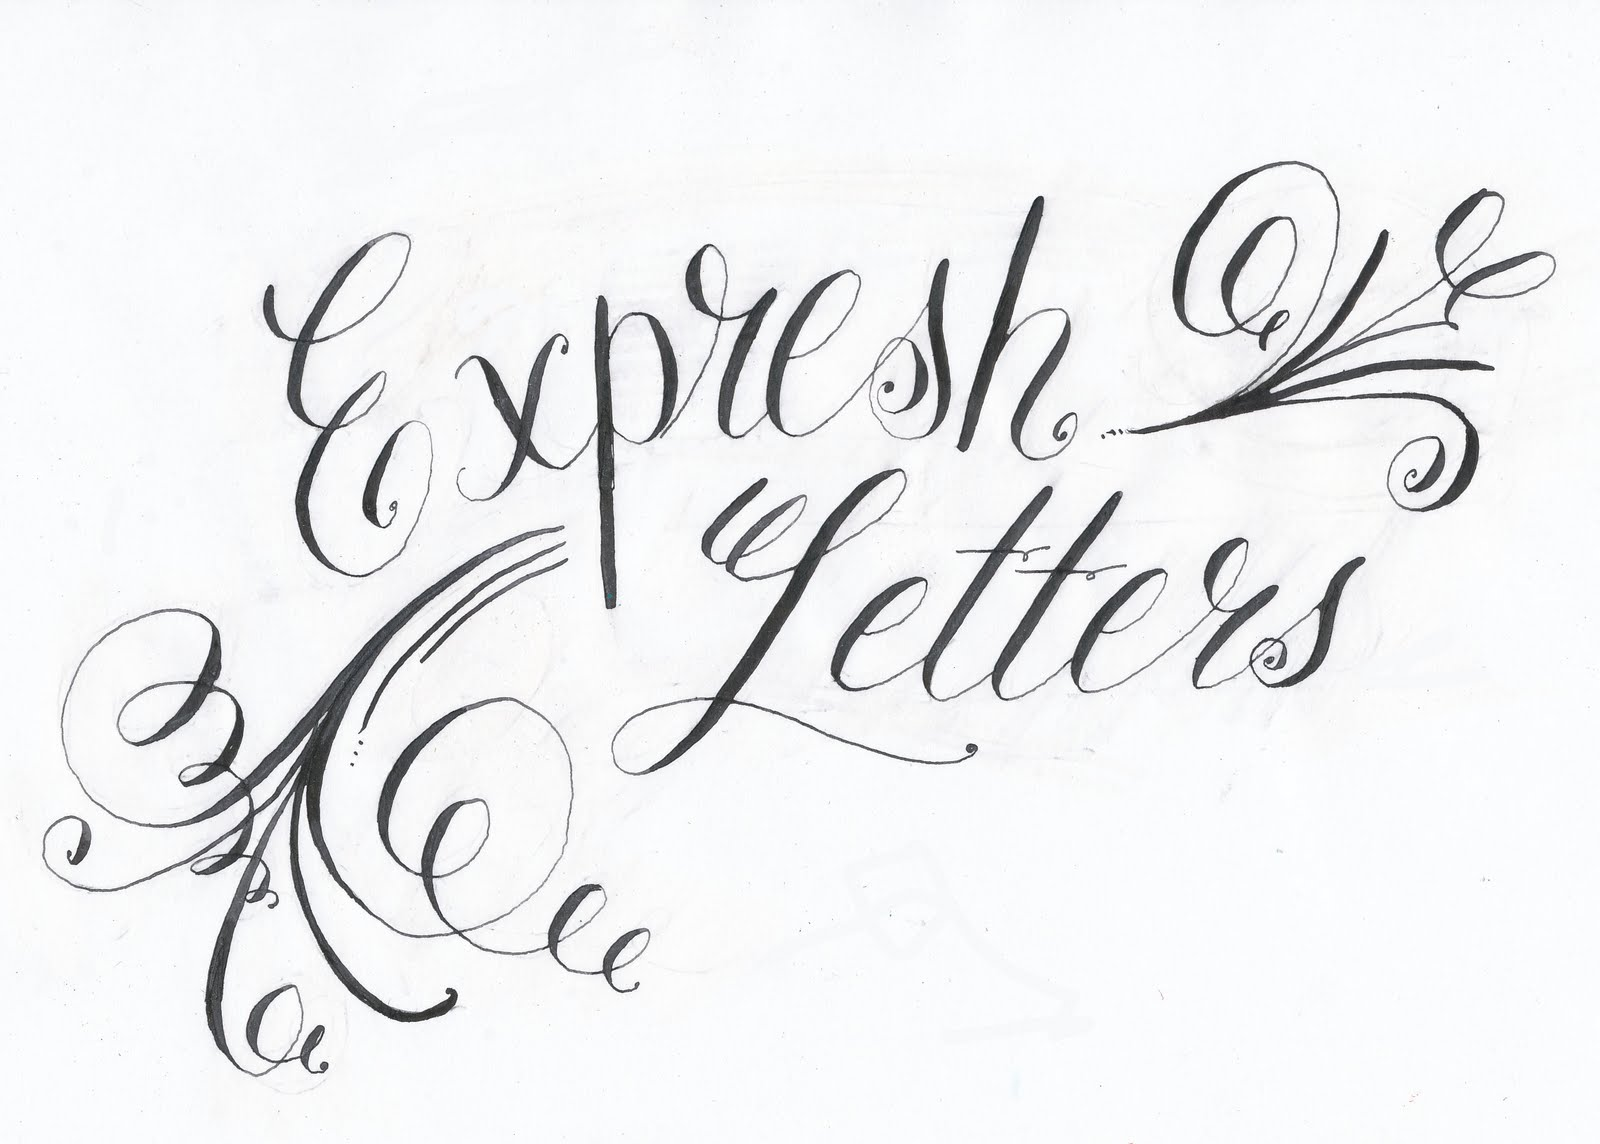 Expresh letters by tina vines